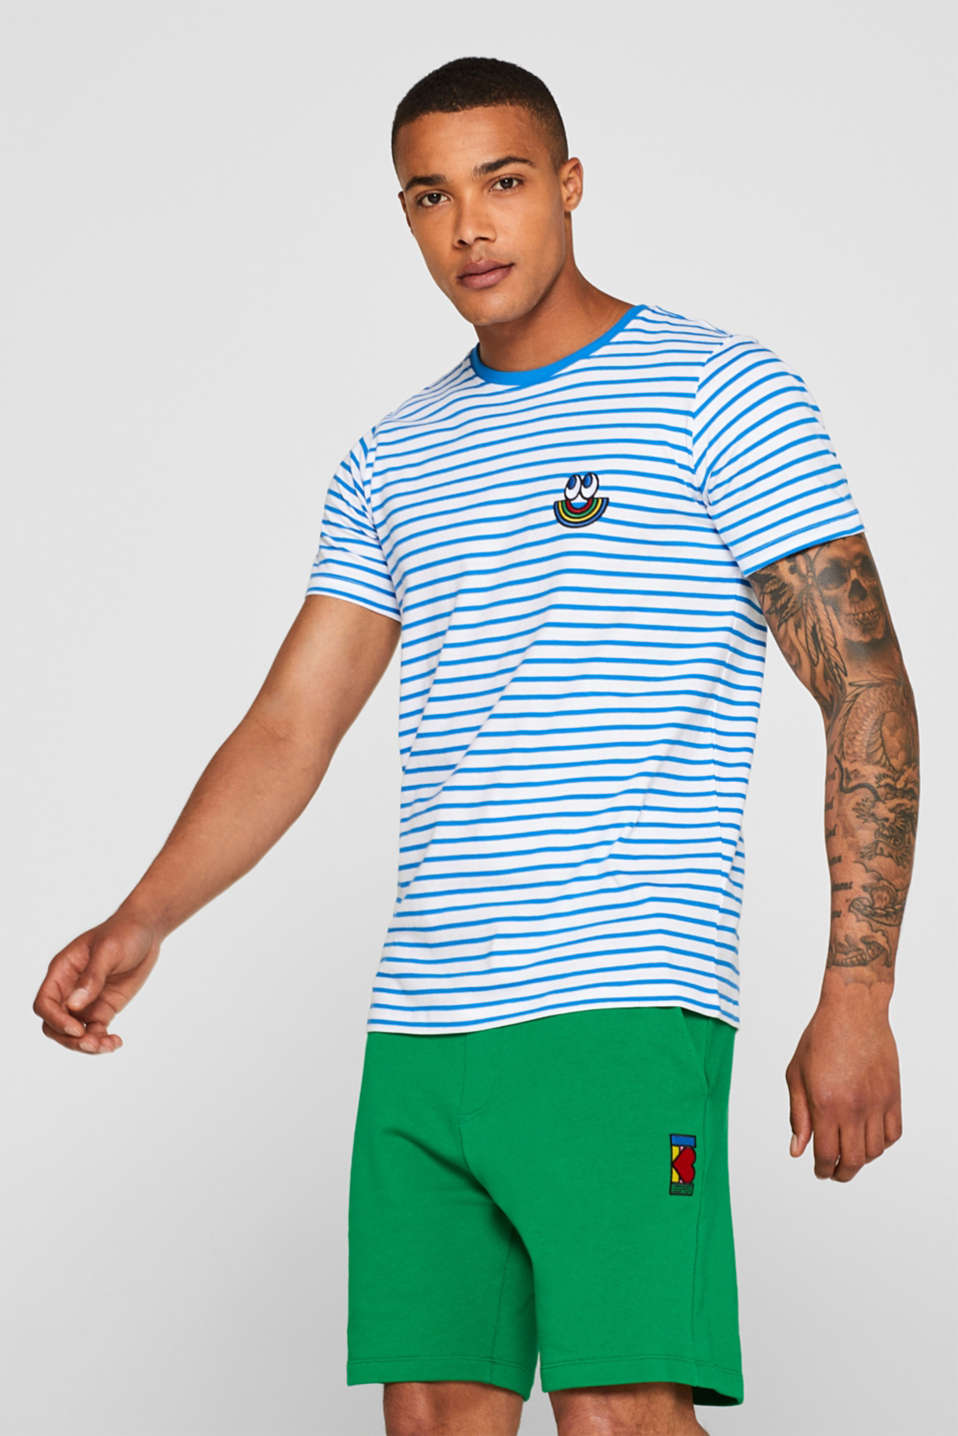 Esprit - CRAIG & KARL: Stripe T-Shirt, 100% organic cotton